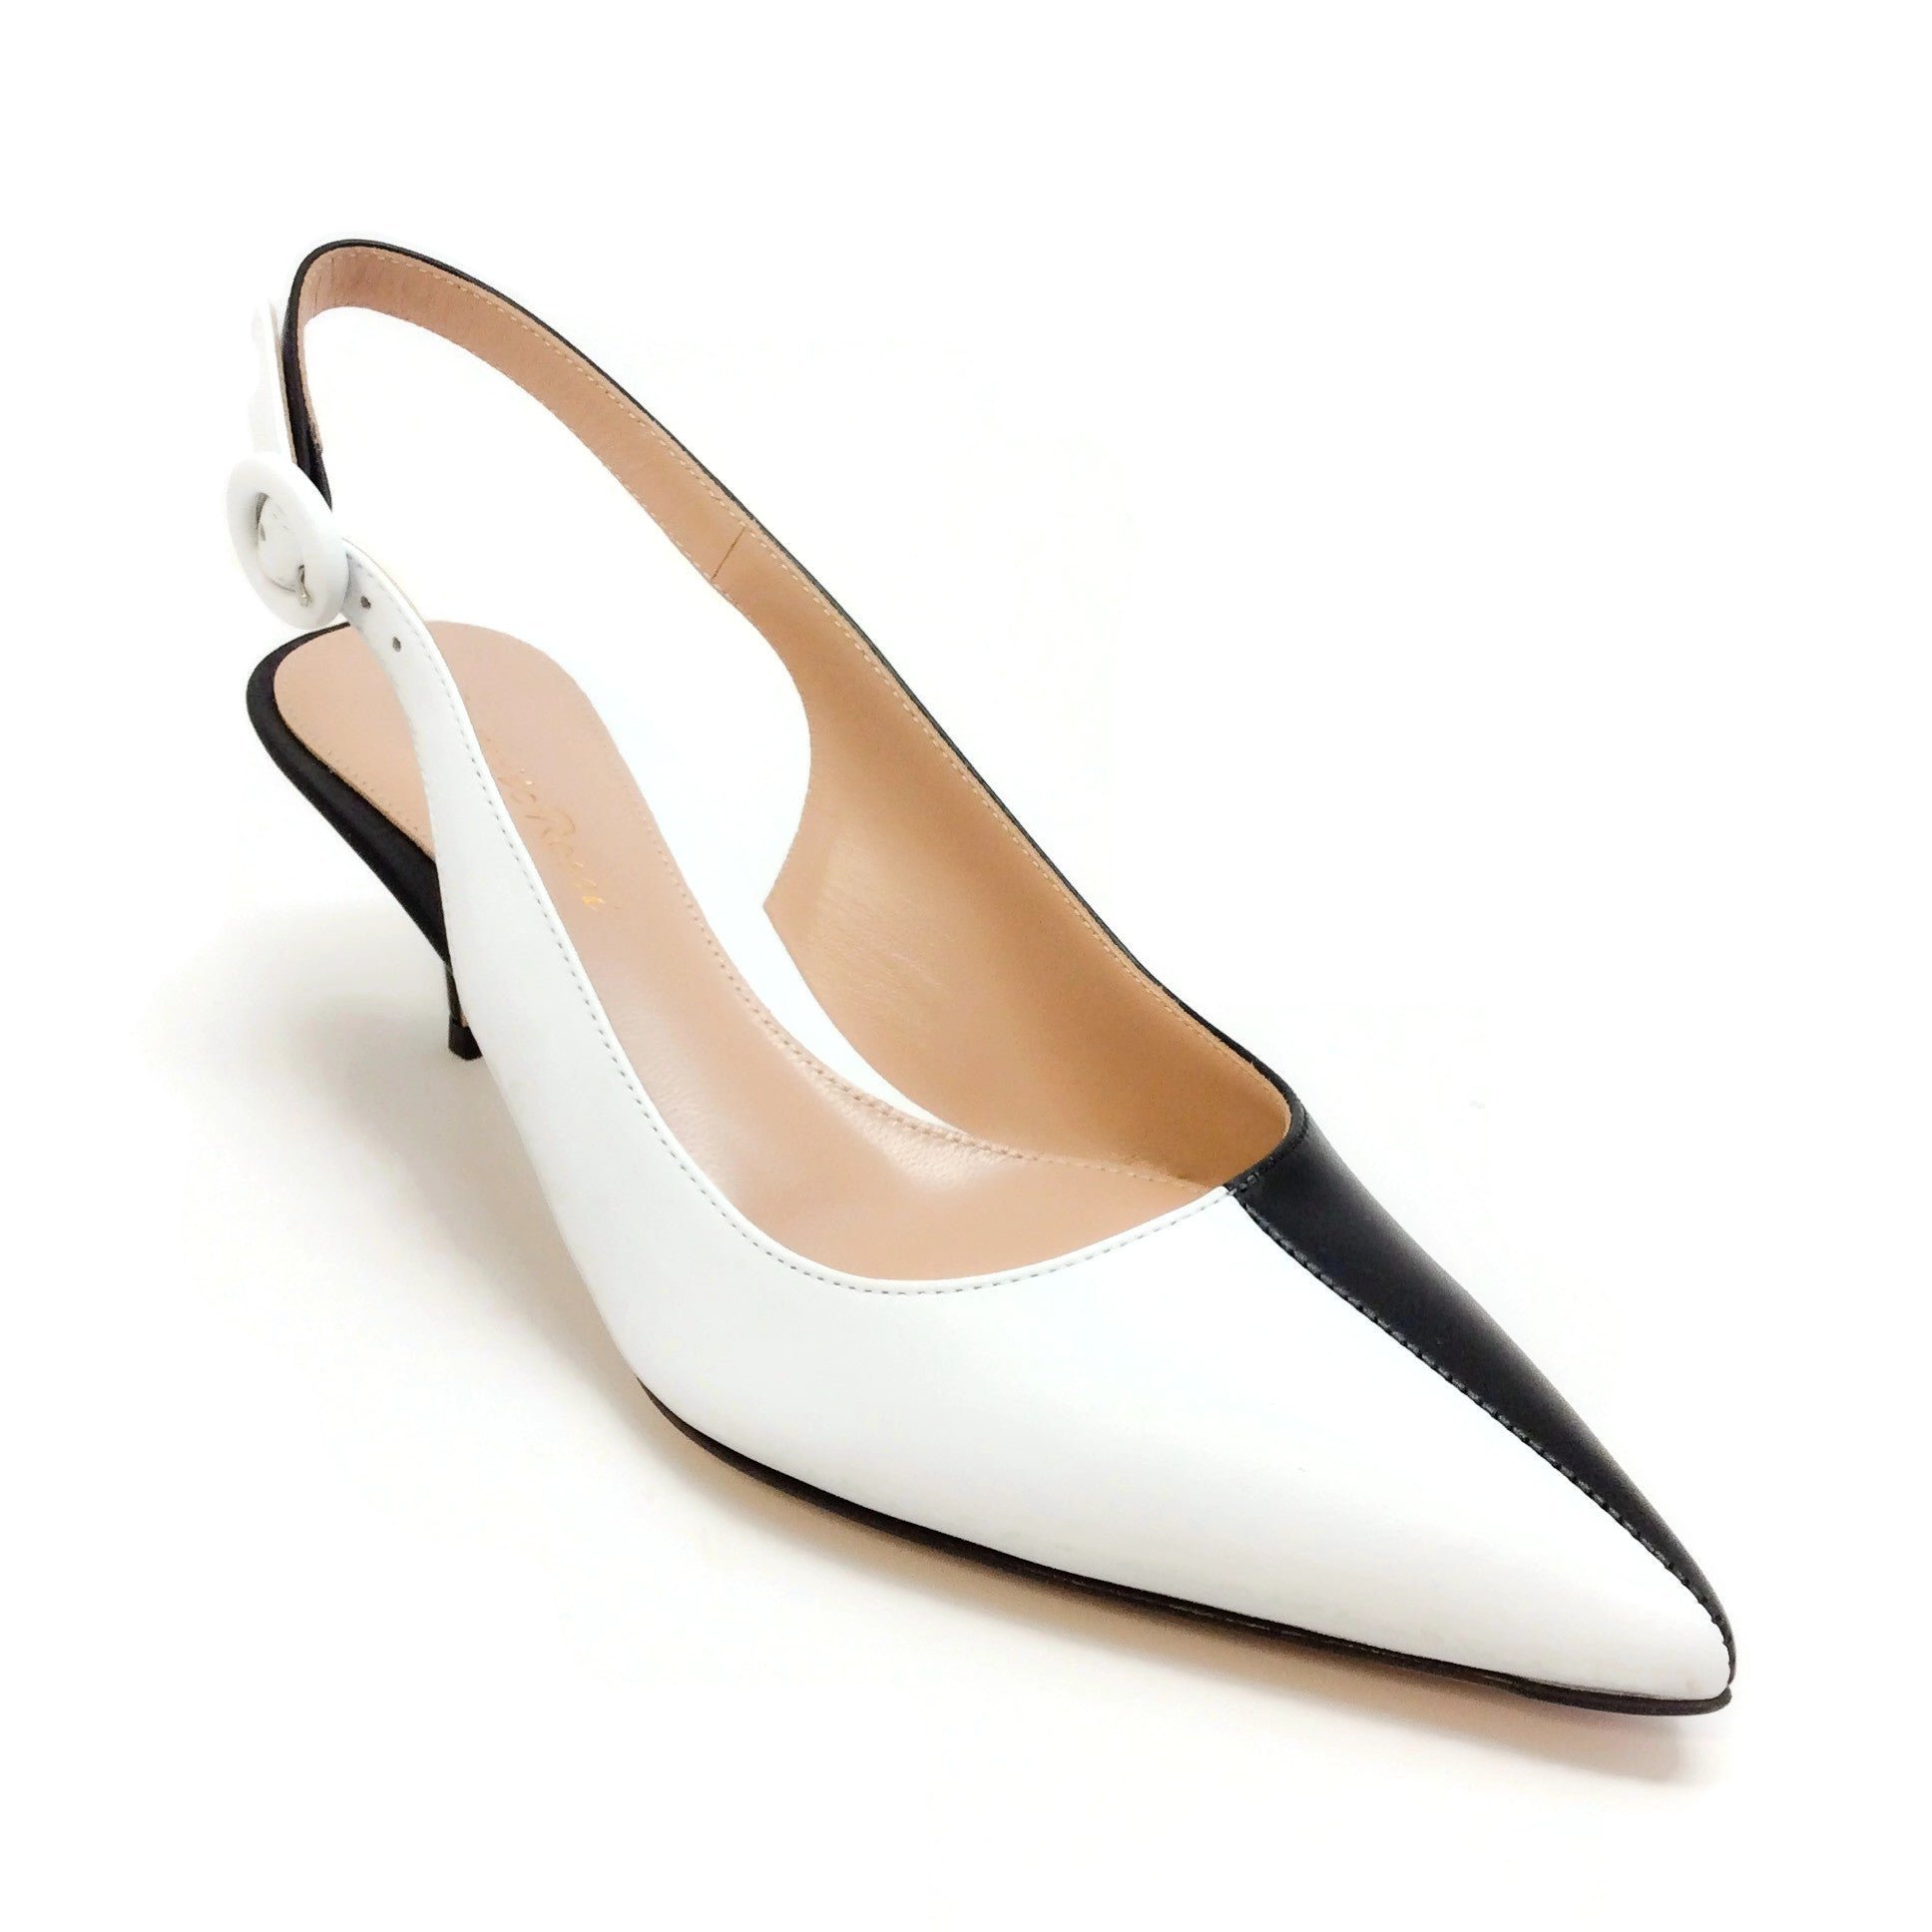 Gianvito Rossi Black / White Arleen Slingback Pumps